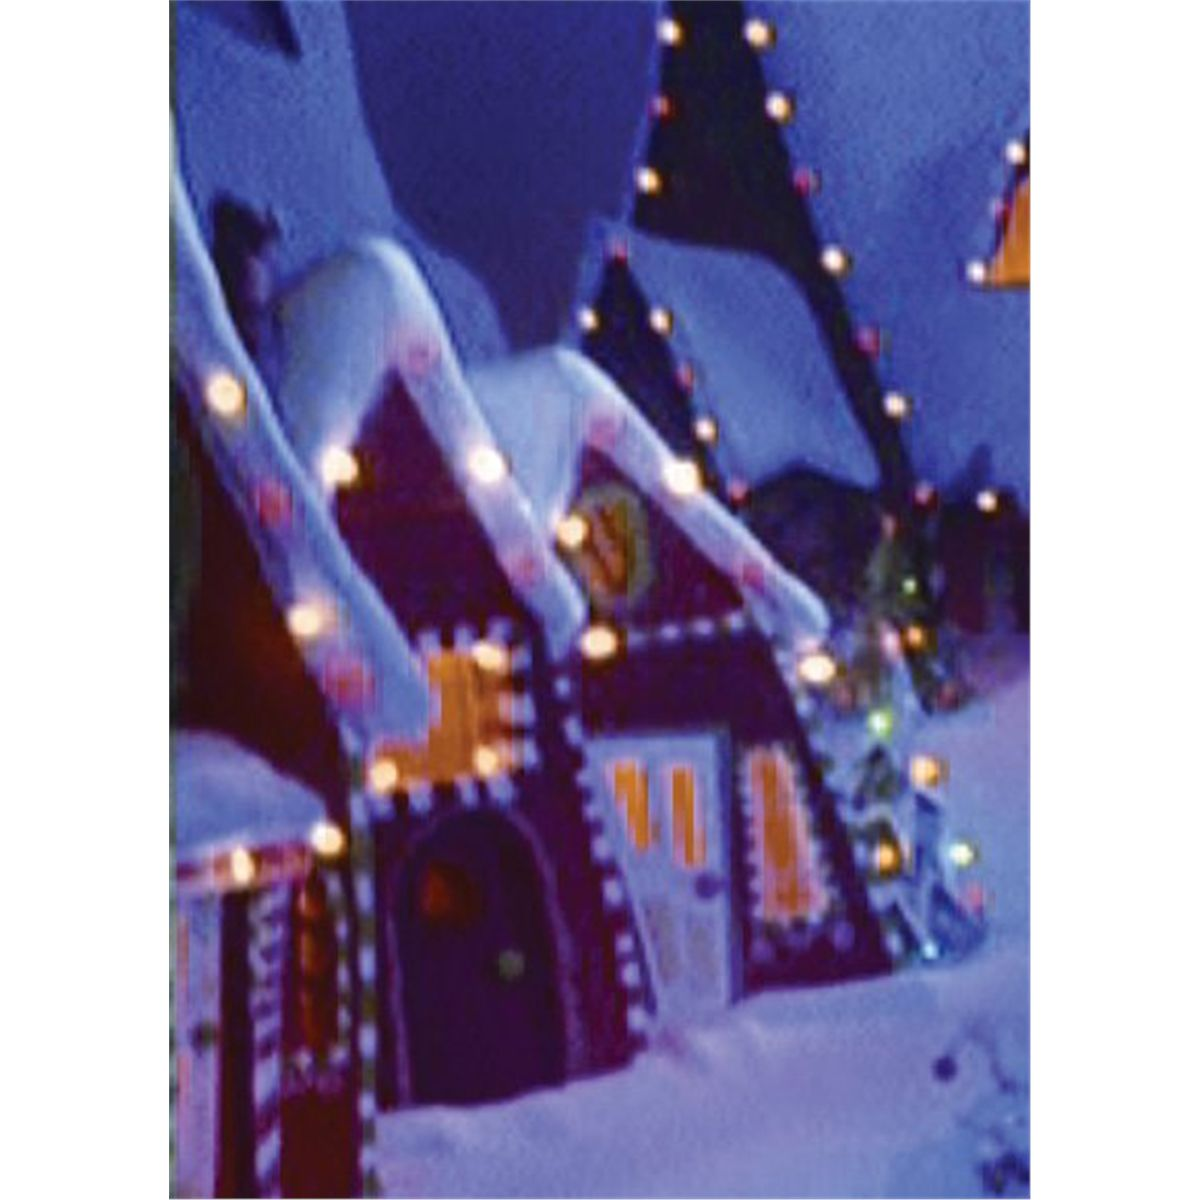 Christmas Town houses from The Nightmare Before Christmas